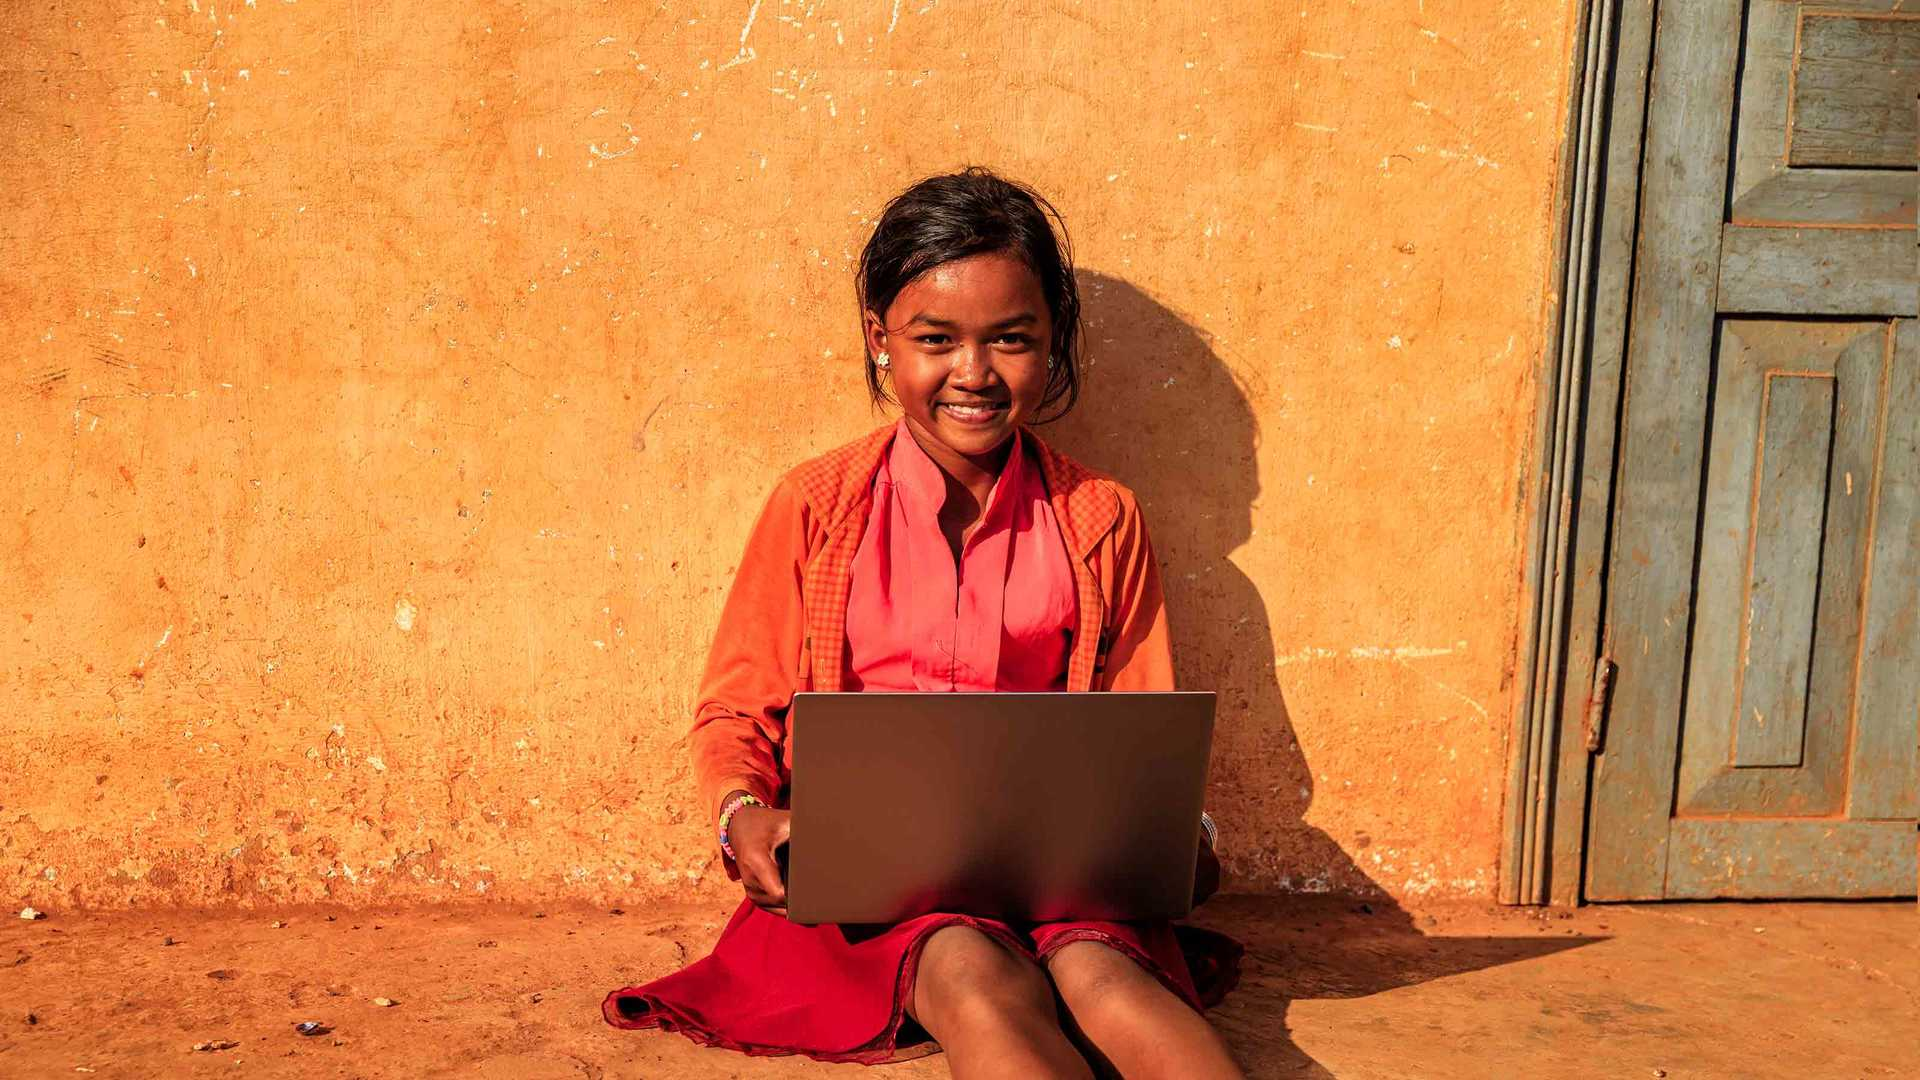 Expo Live - Cambodian girl sitting against a wall using a laptop